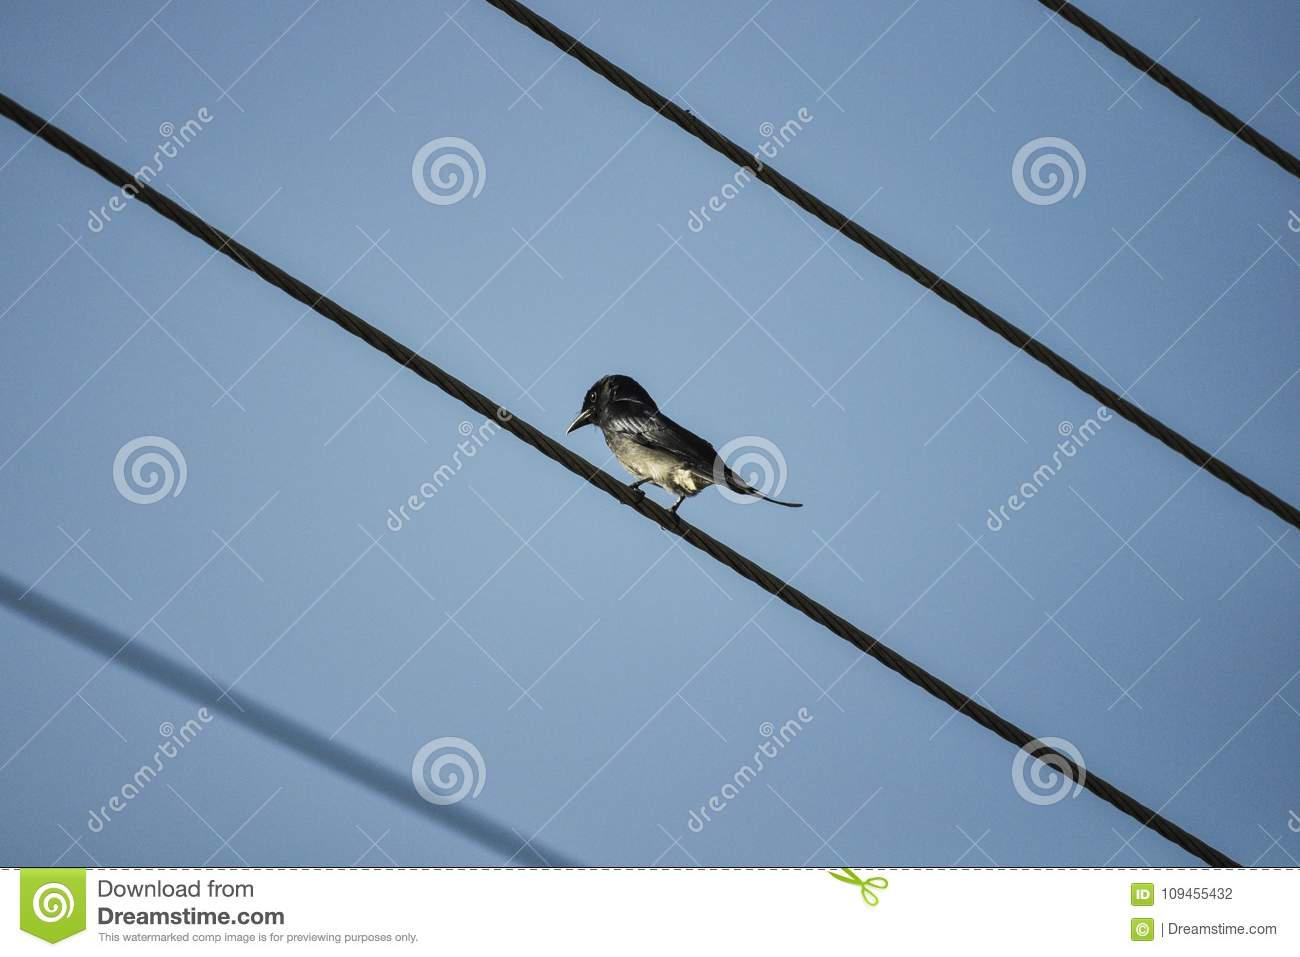 Single Humming Black Bird Sitting On Electrical Wires Stock Photo ...